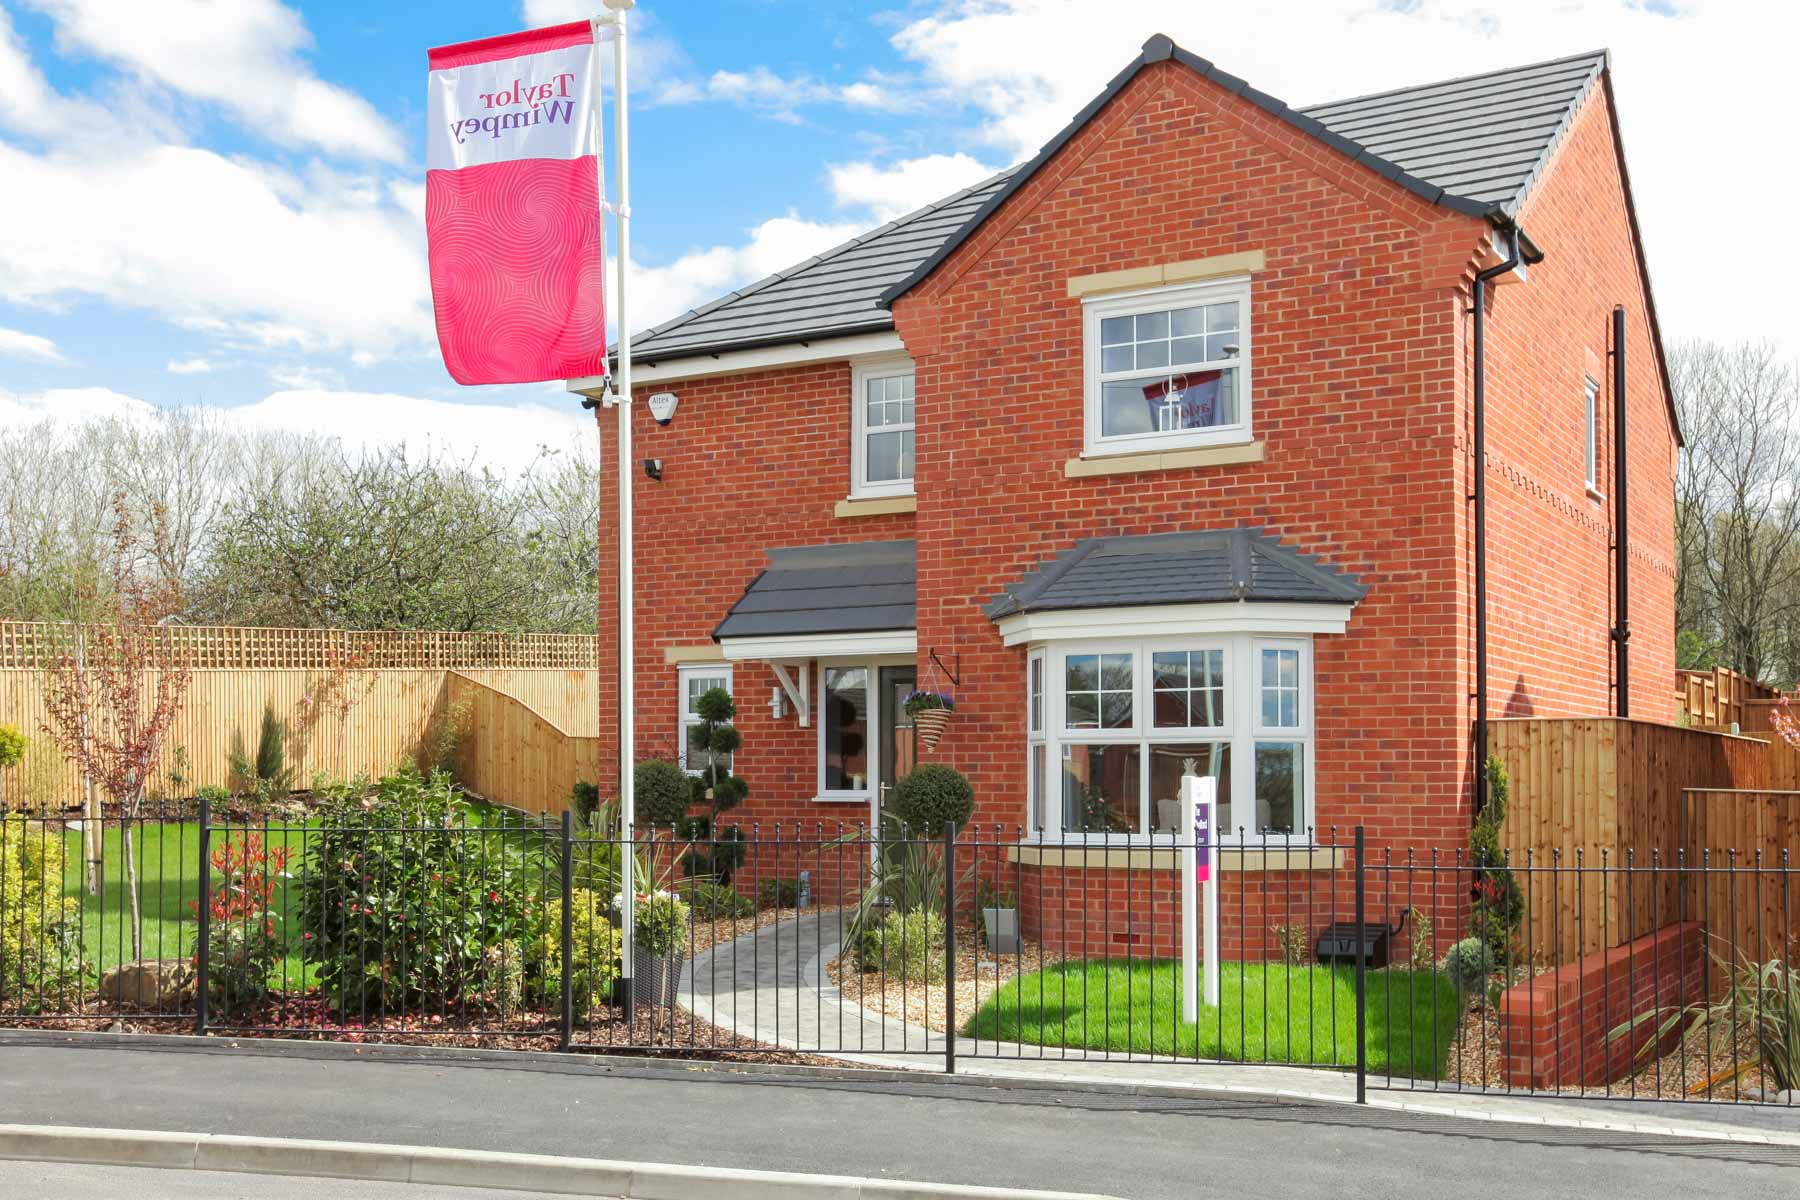 The chelford at pennine gate rochdale taylor wimpey - 610 exterior street bronx ny 10451 ...